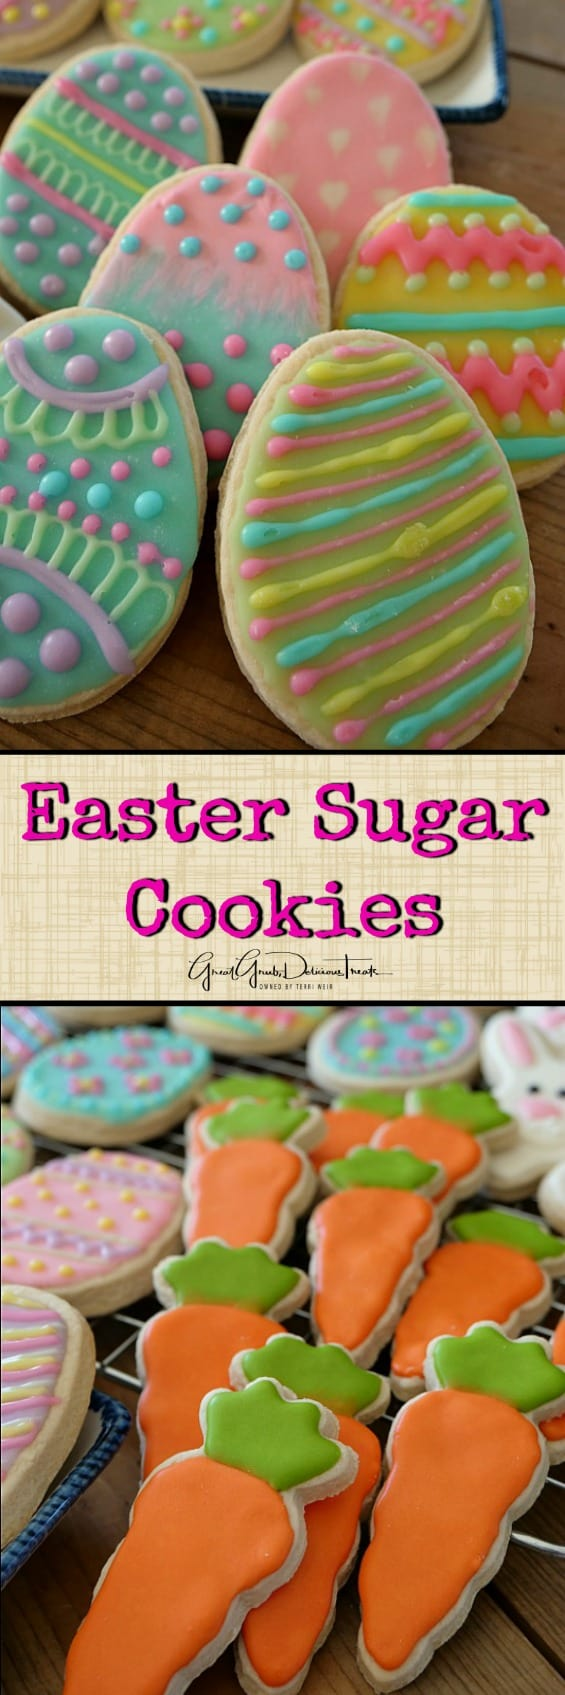 Easter Sugar Cookies